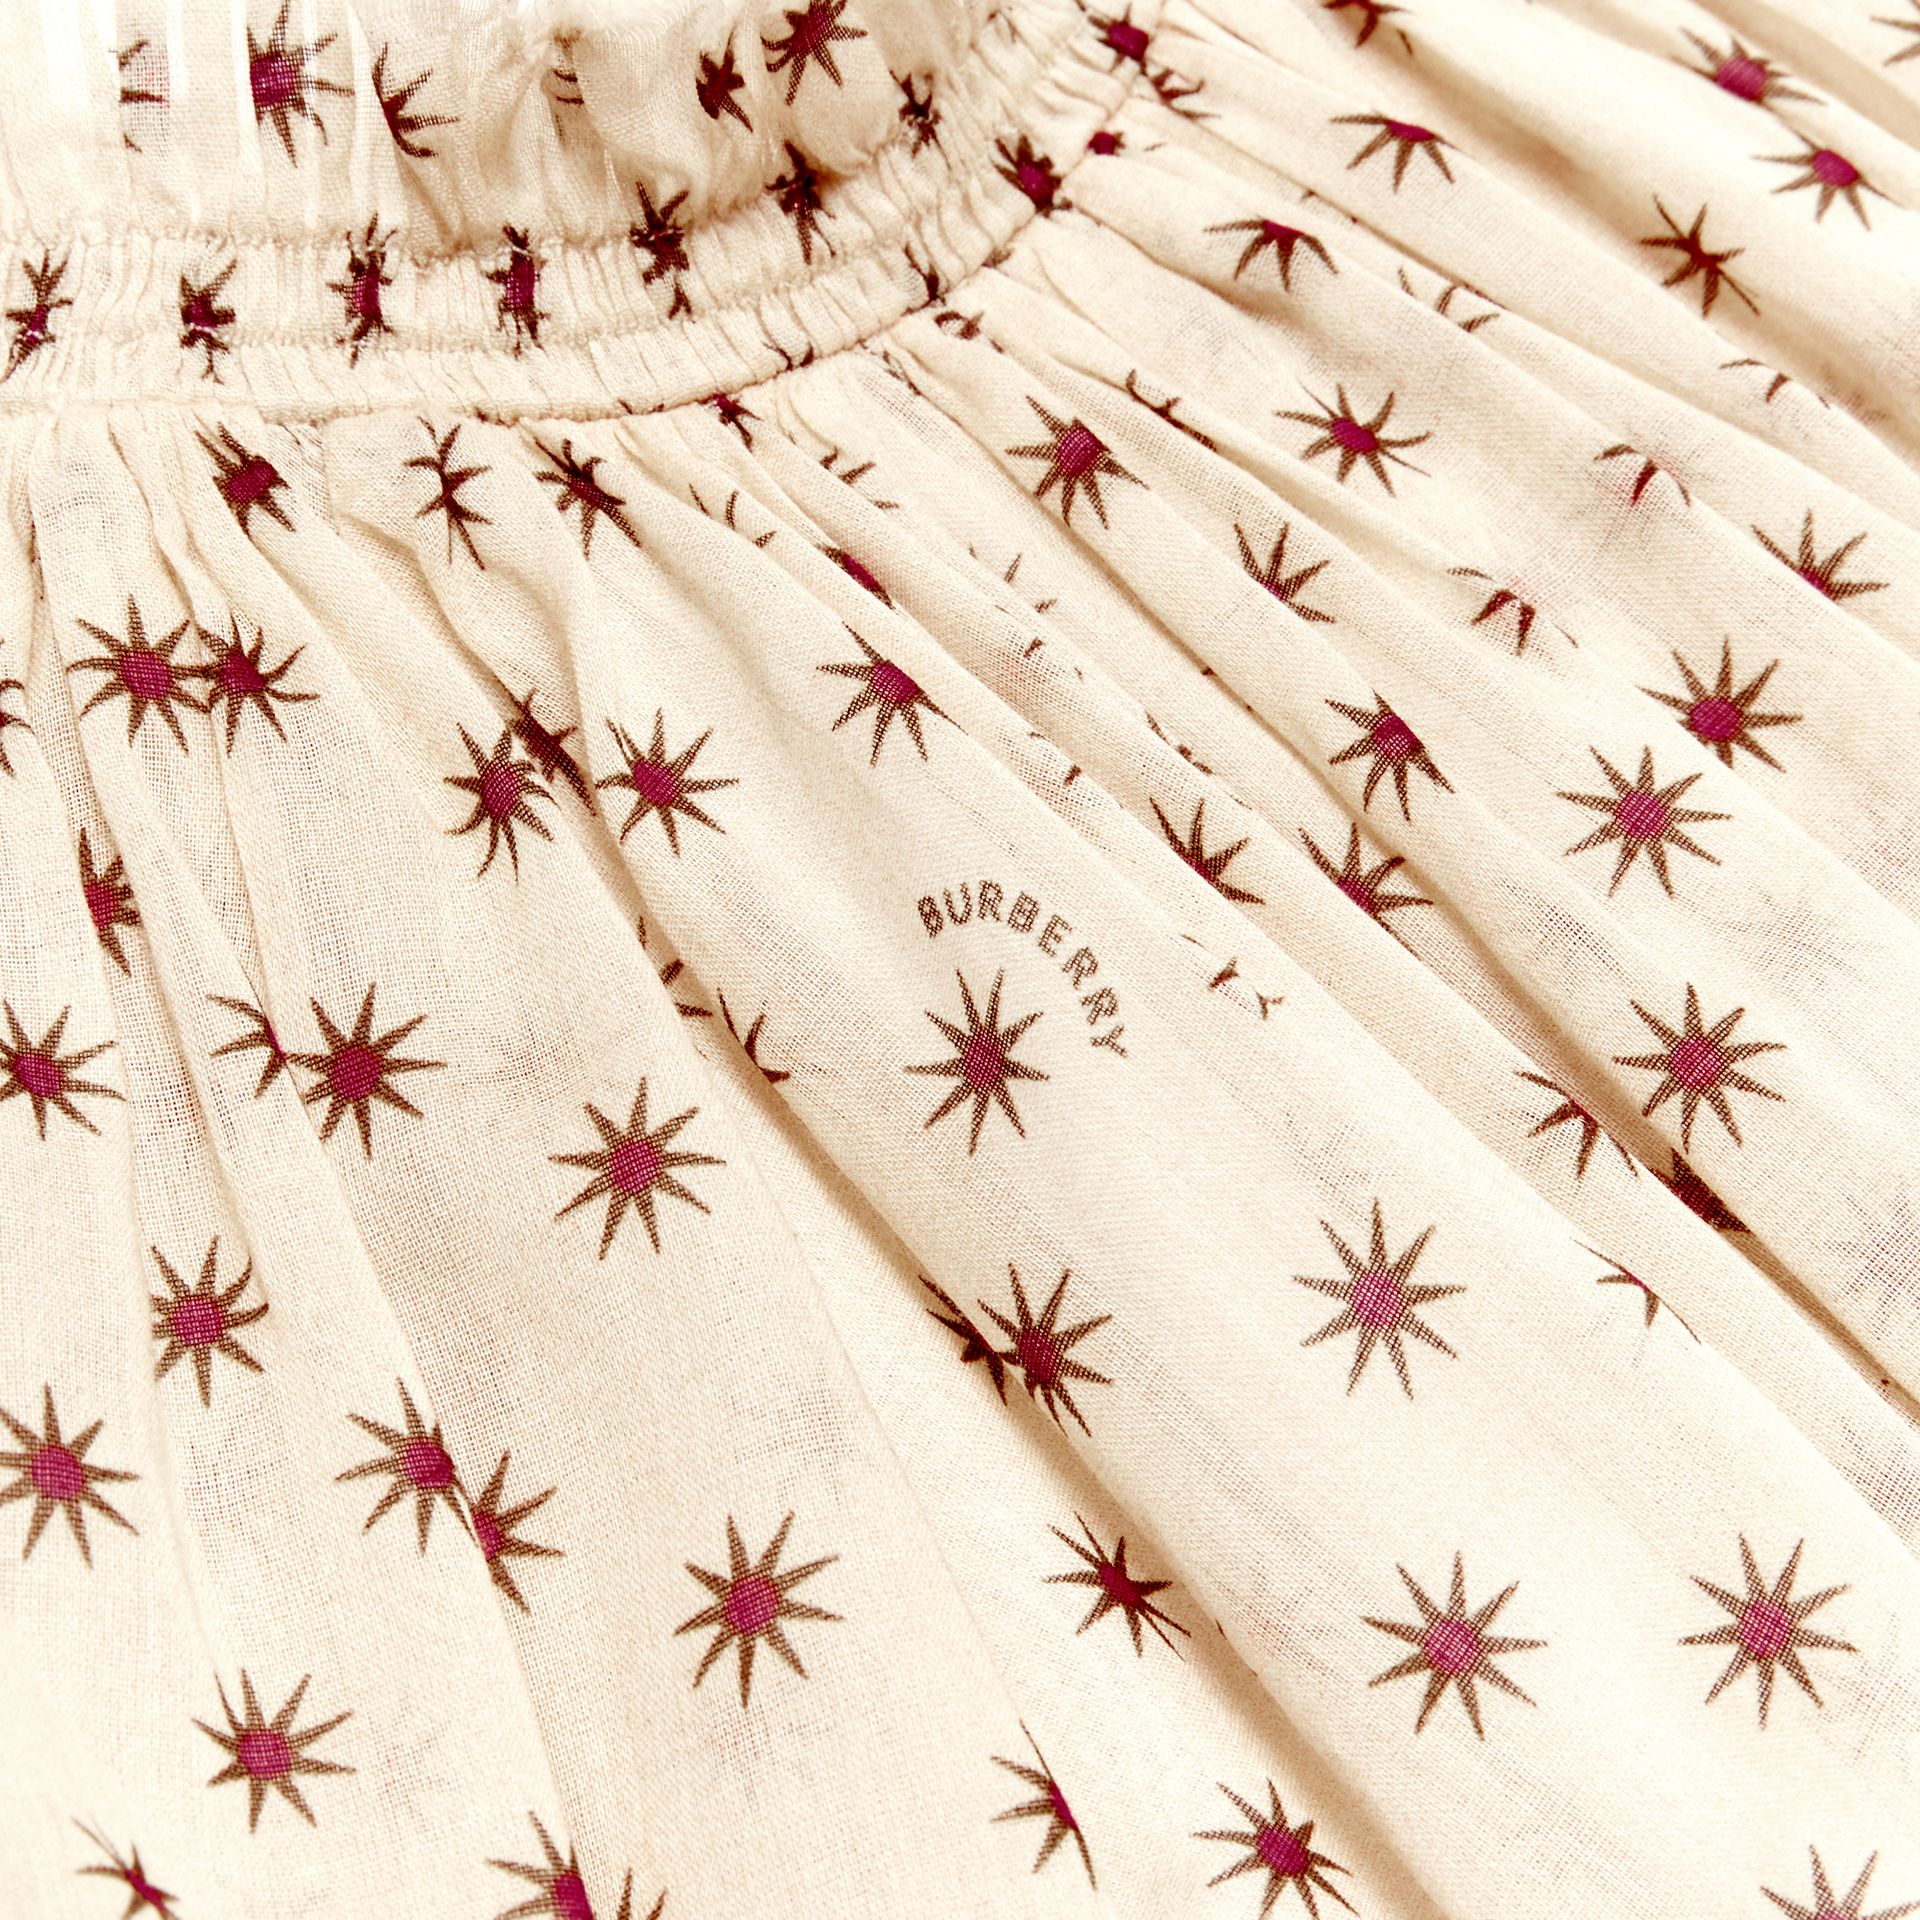 Star Print Gathered Cotton Dress in Military Red - Children | Burberry - gallery image 1